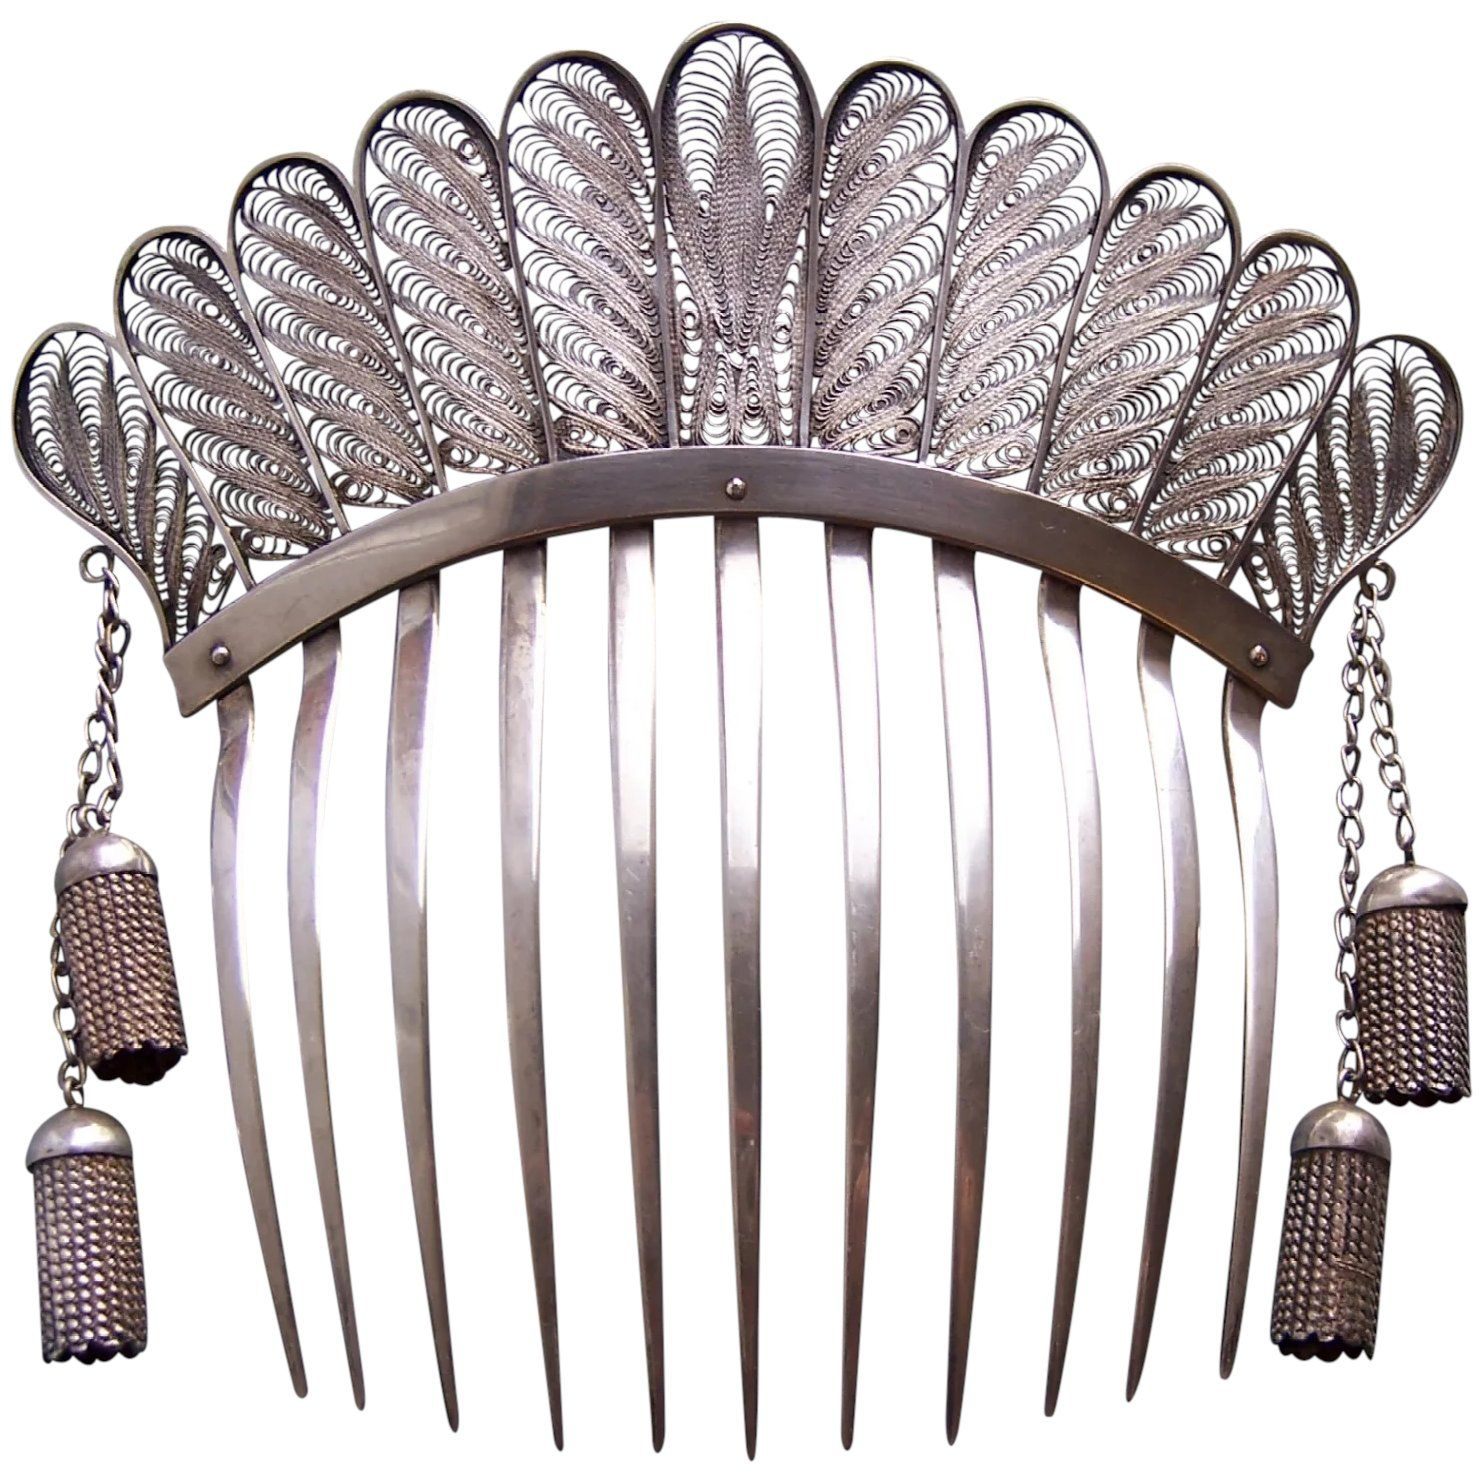 Pin On Vintage Hair Combs Tiaras Clips And Hairstyles